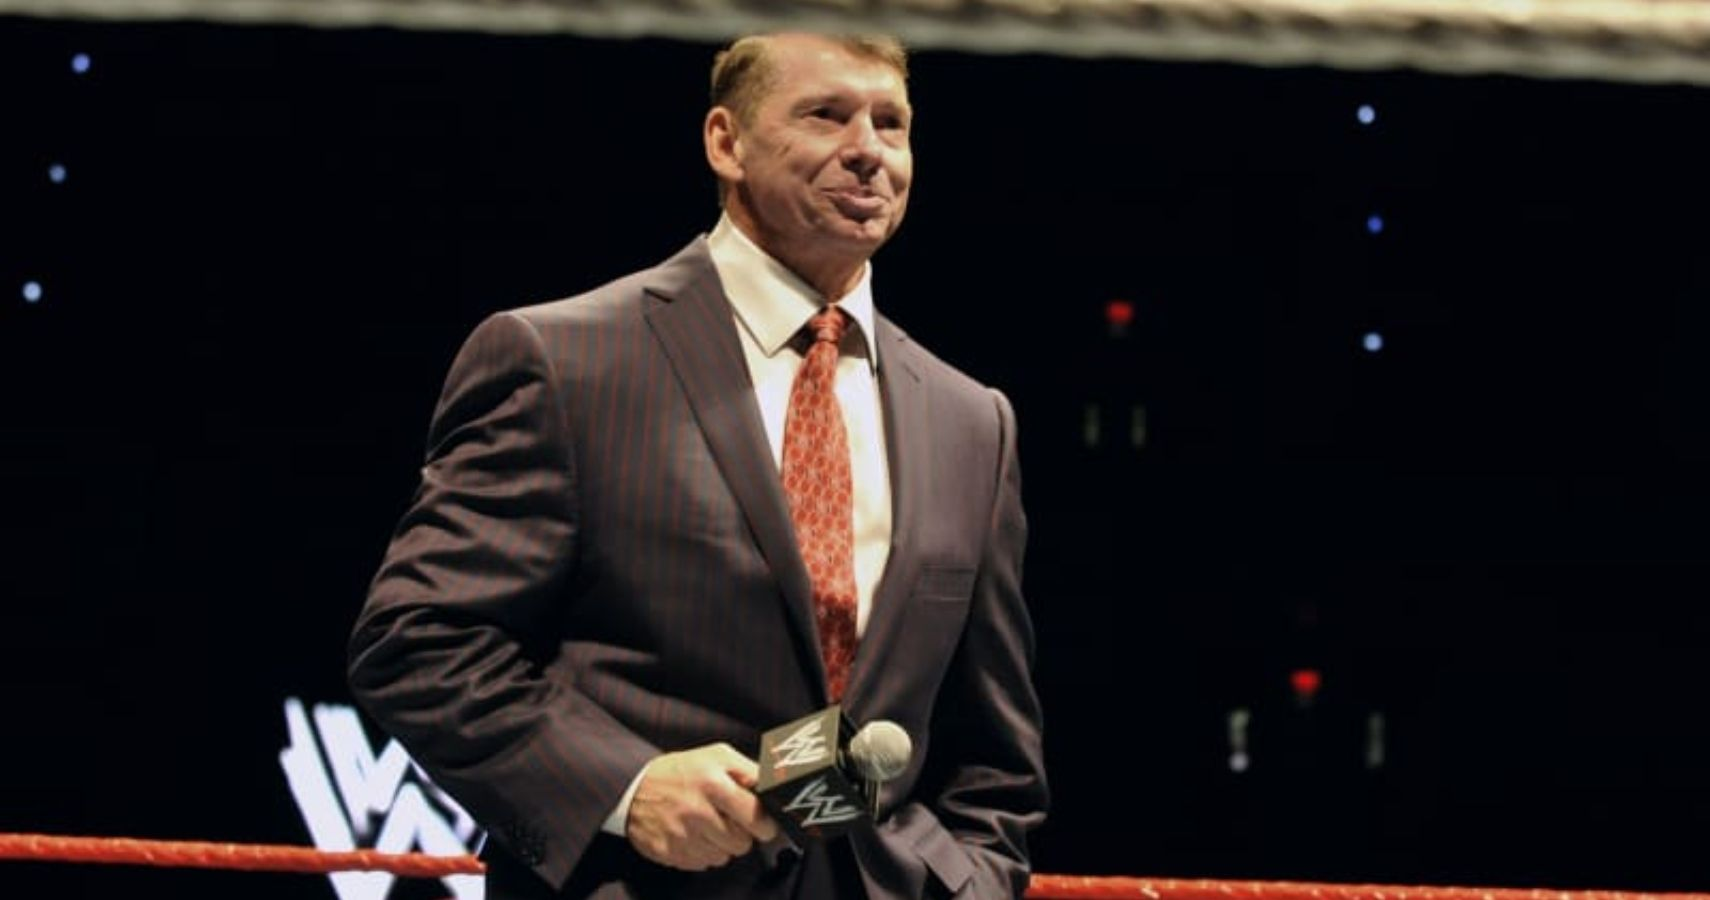 """Vince McMahon Simply """"Had Nothing"""" For Released Superstars, According To WWE Insider"""